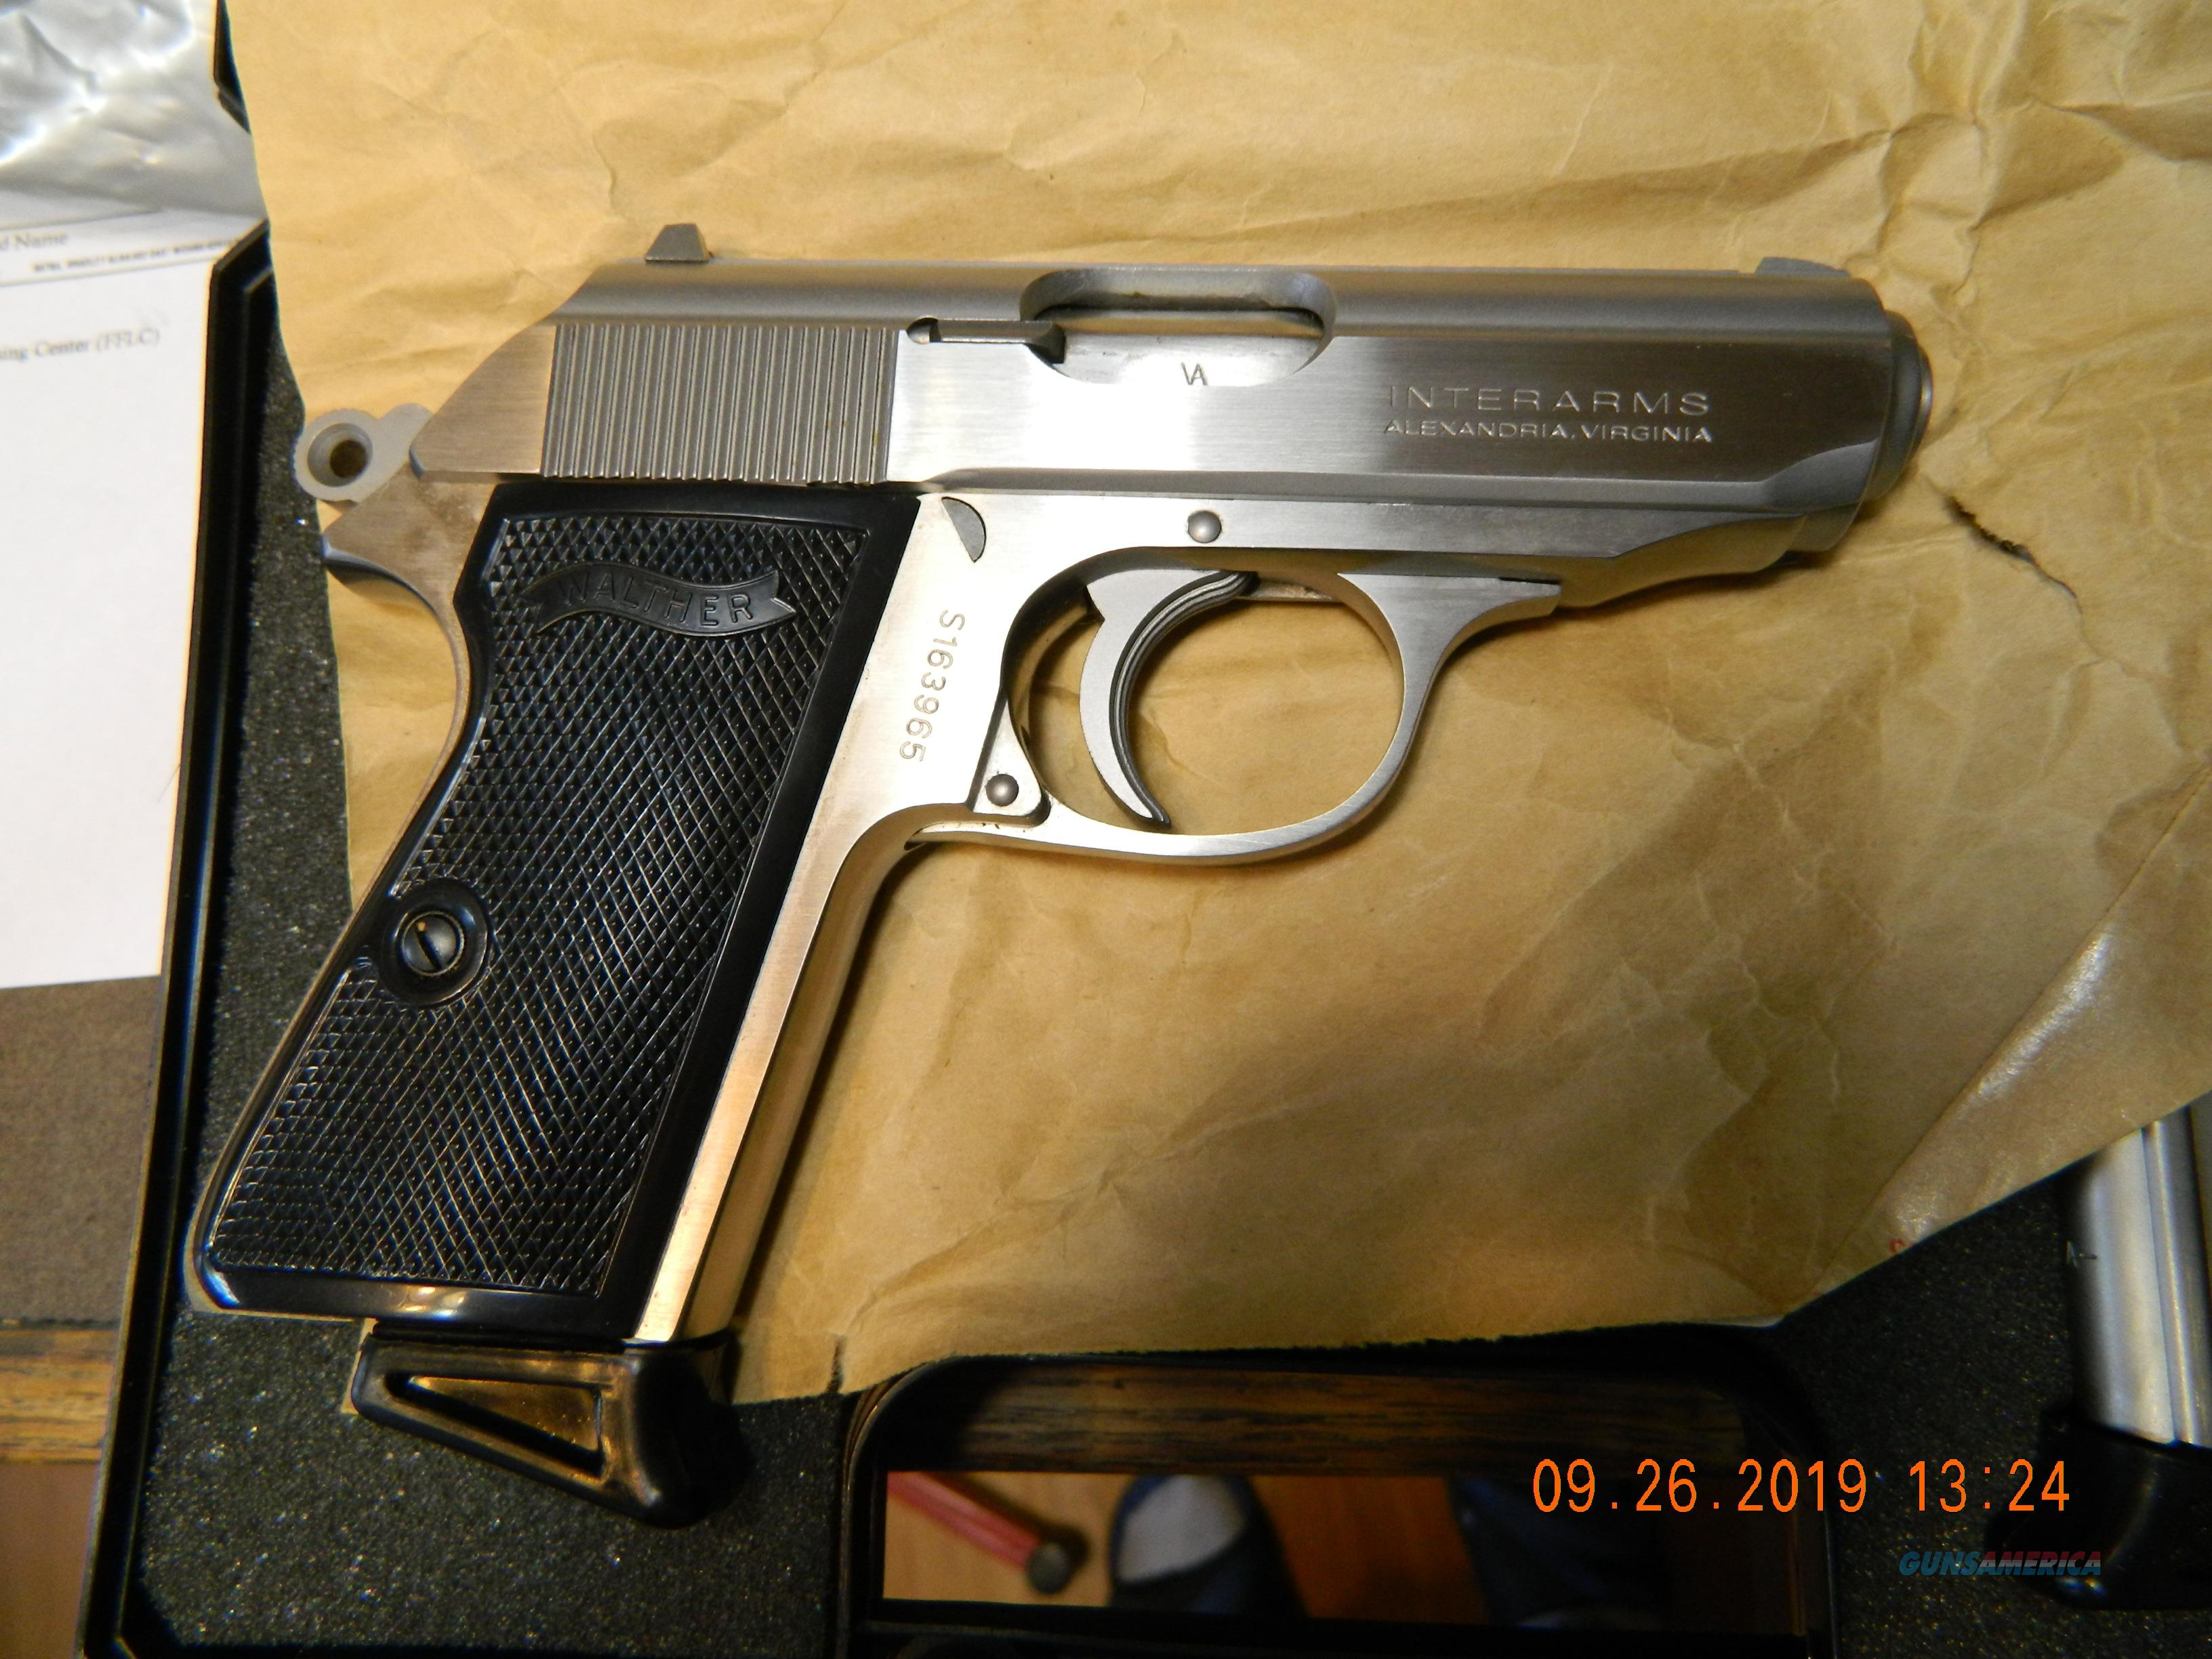 Interarms PPK/S Stainless 380  Guns > Pistols > Walther Pistols > Post WWII > PPK Series